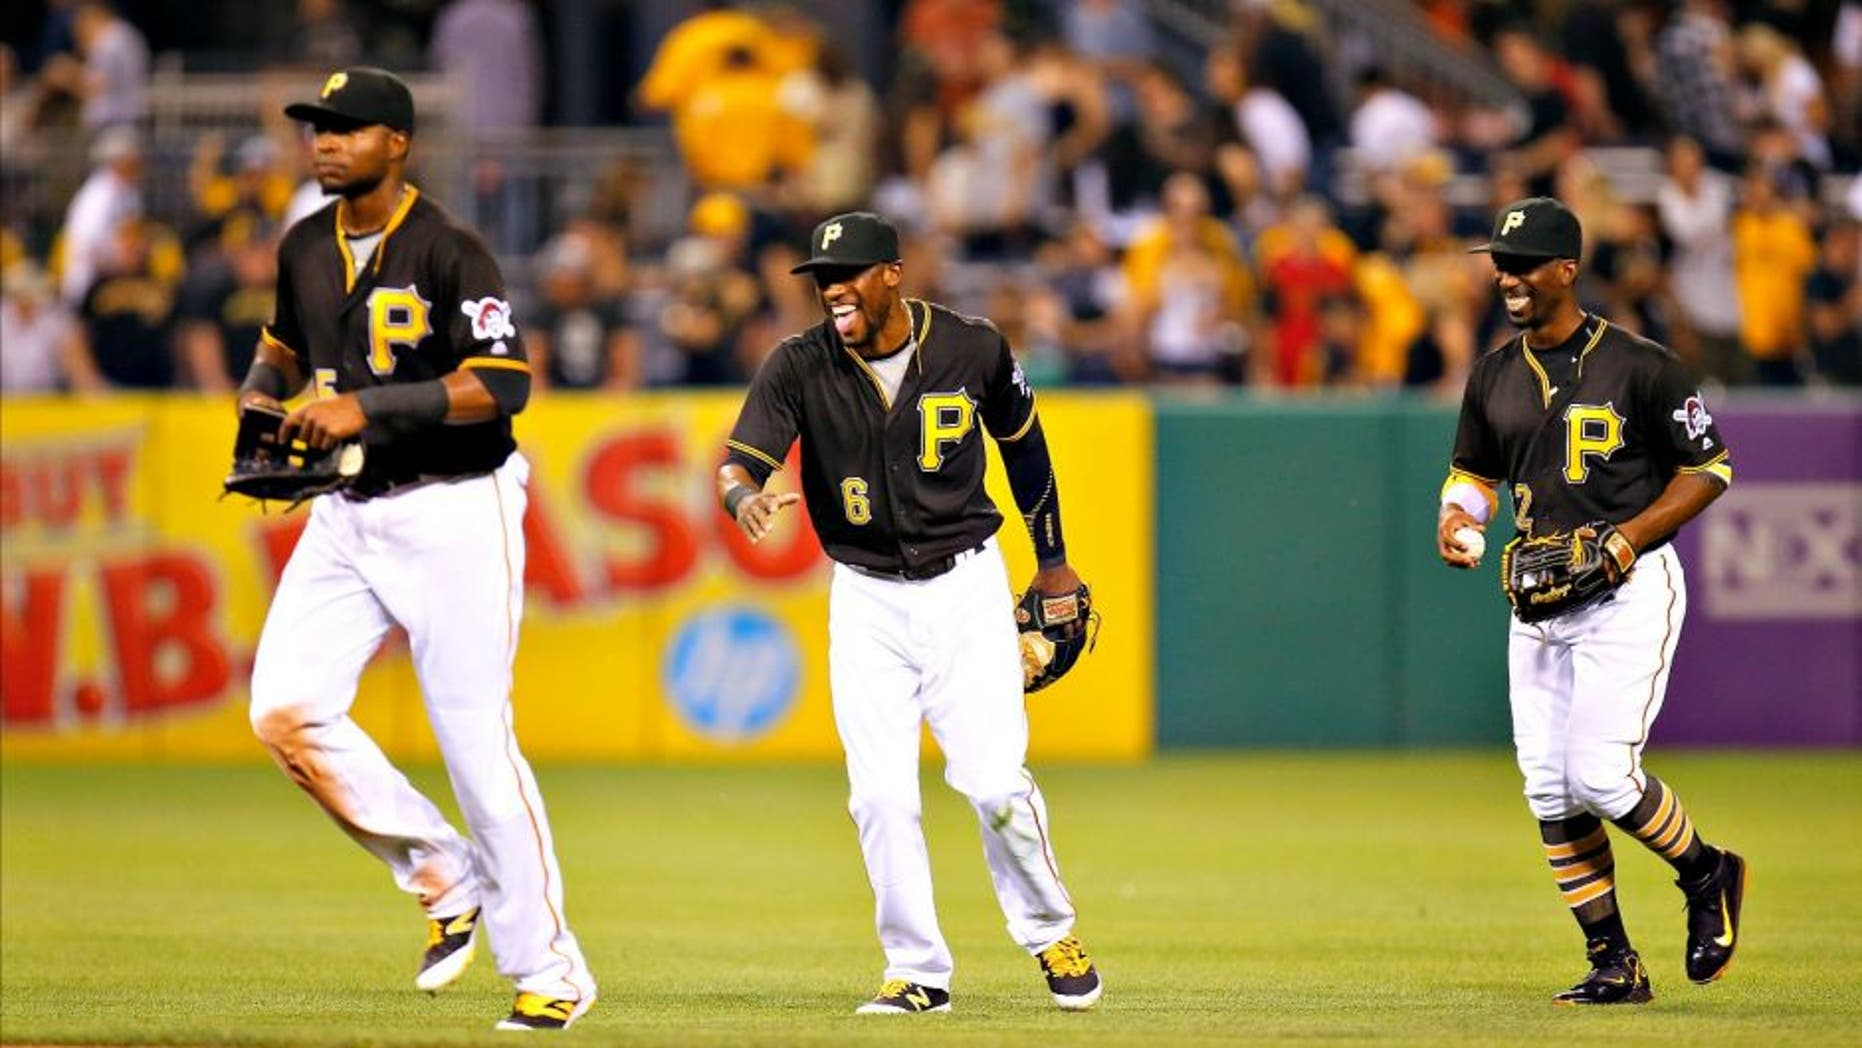 PITTSBURGH, PA - JUNE 20: Andrew McCutchen #22, Starling Marte #6 and Gregory Polanco #25 of the Pittsburgh Pirates celebrate after defeating the San Francisco Giants 1-0 at PNC Park on June 20, 2016 in Pittsburgh, Pennsylvania. (Photo by Justin K. Aller/Getty Images)